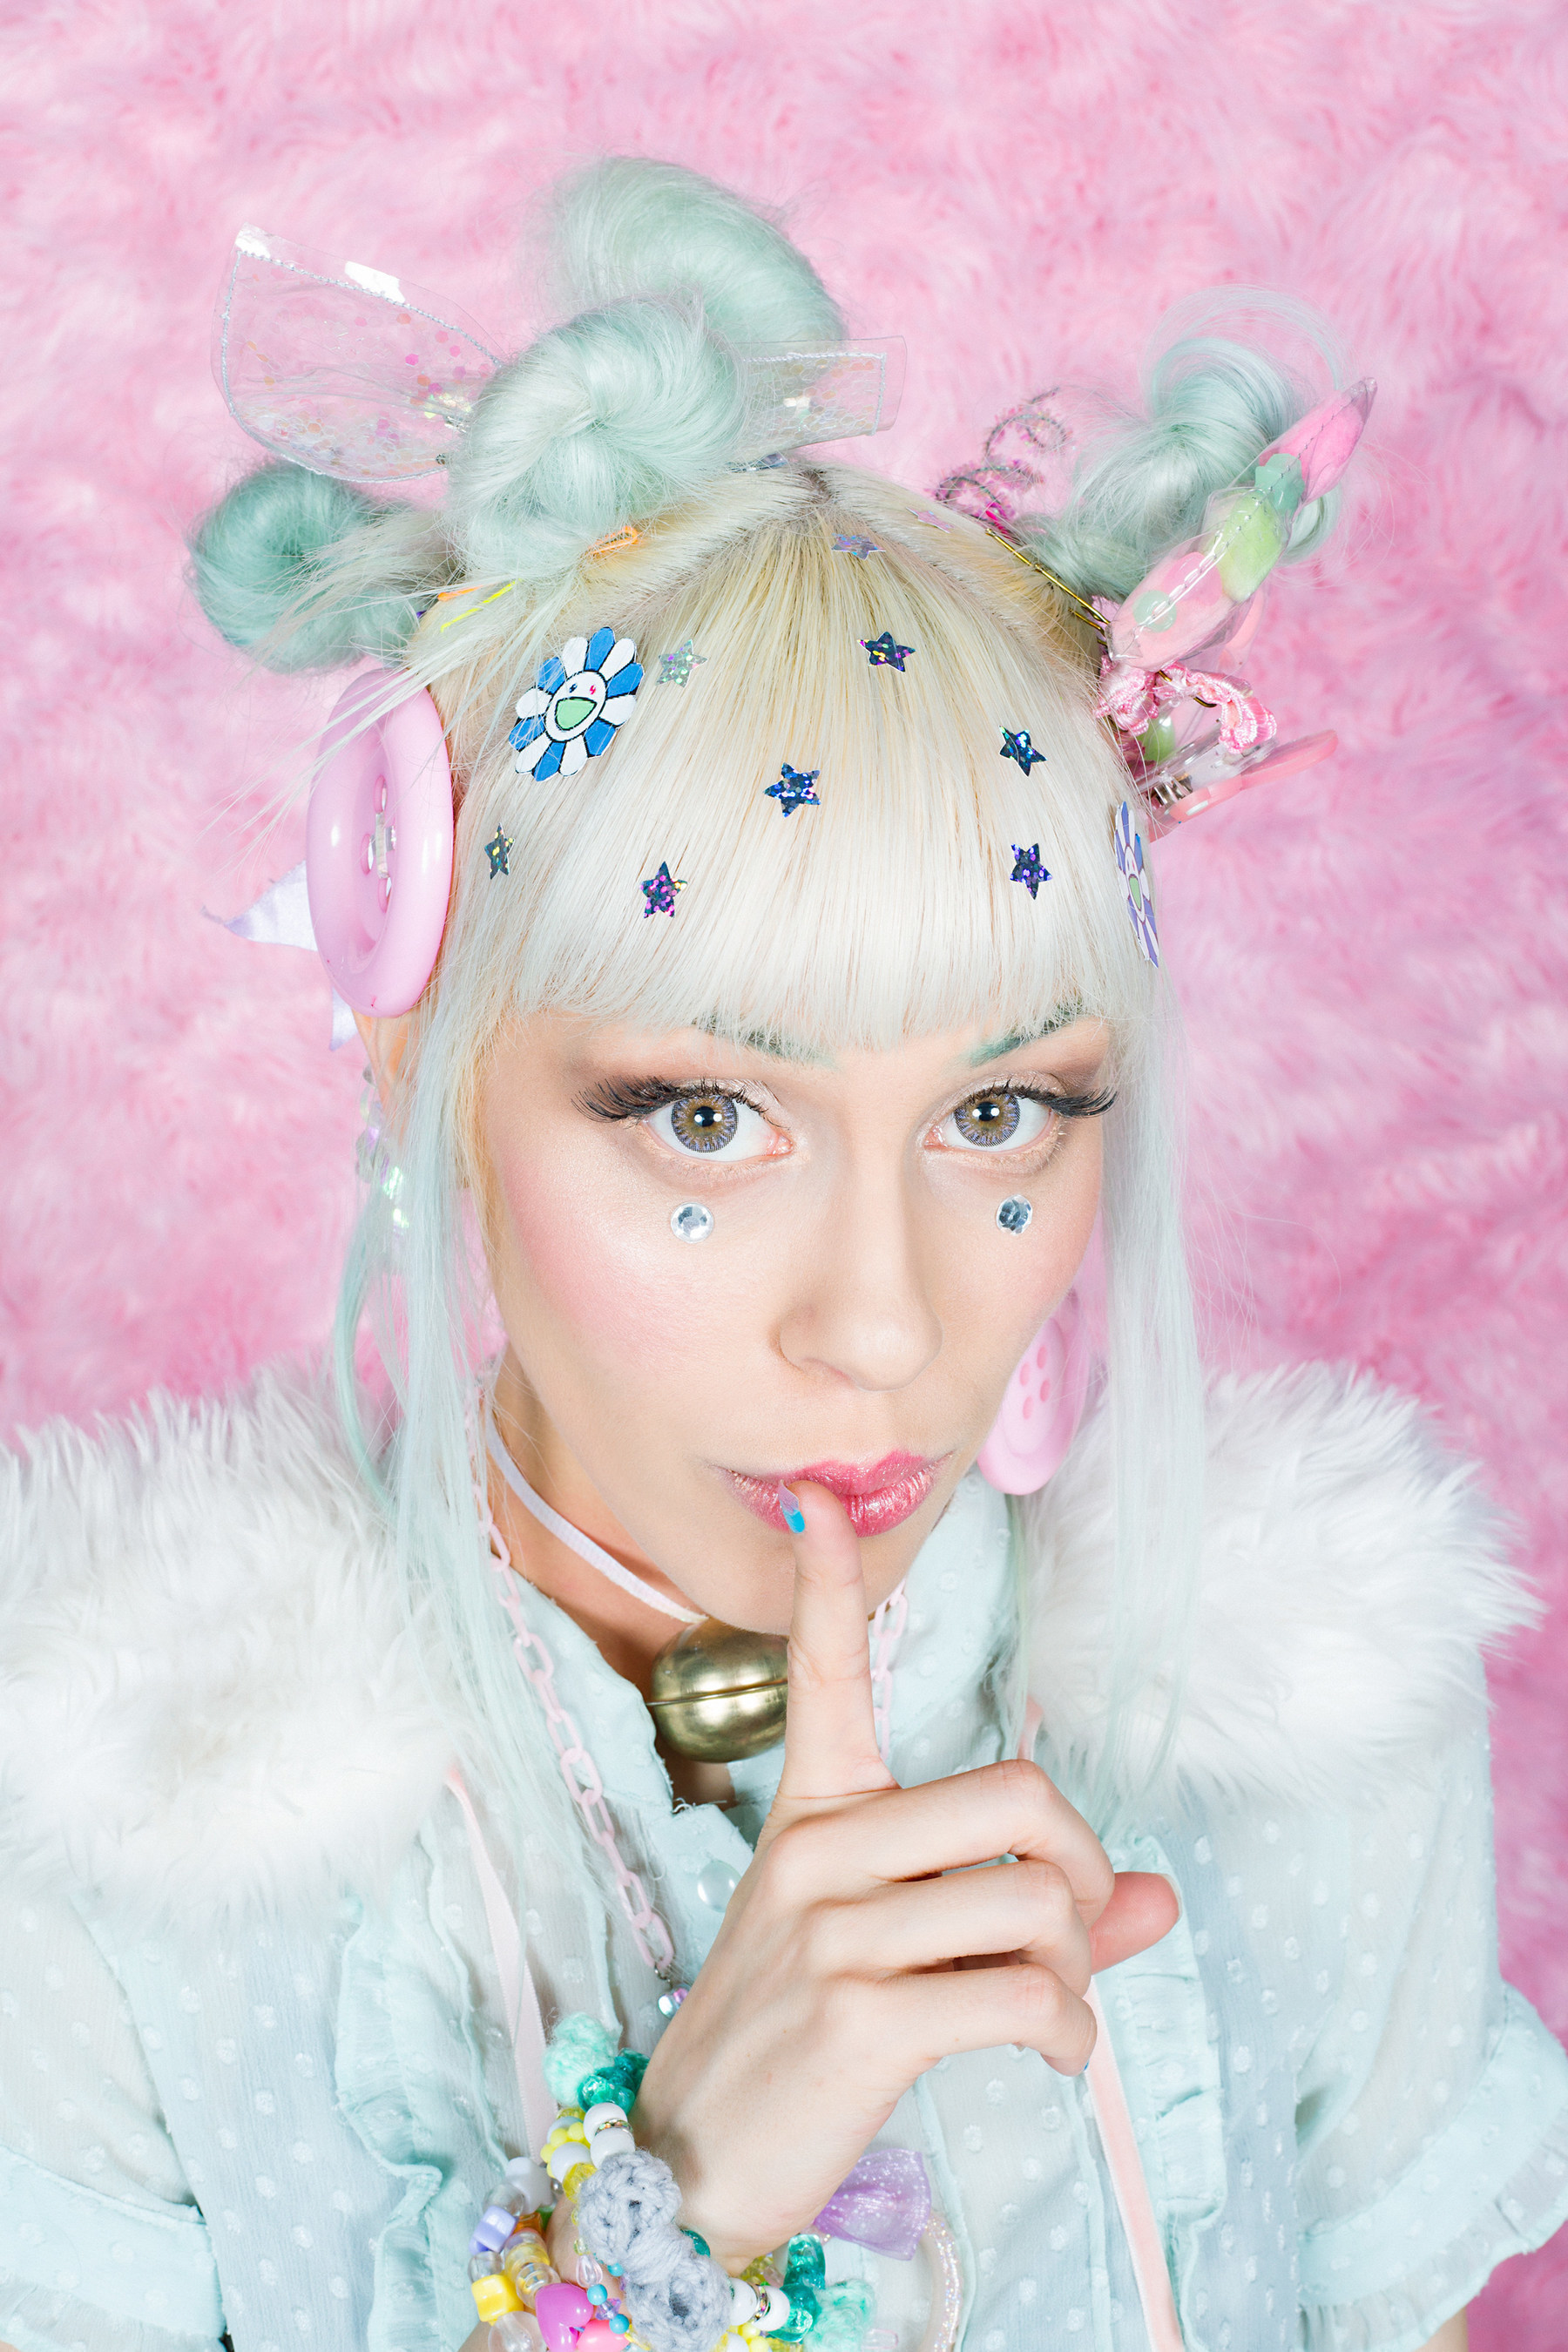 Kawaii sparkle princess Audra, hair color by Tegan Fiore and style by Prissie Curiel for Luxelab, photography by Forrest Black and Amelia G